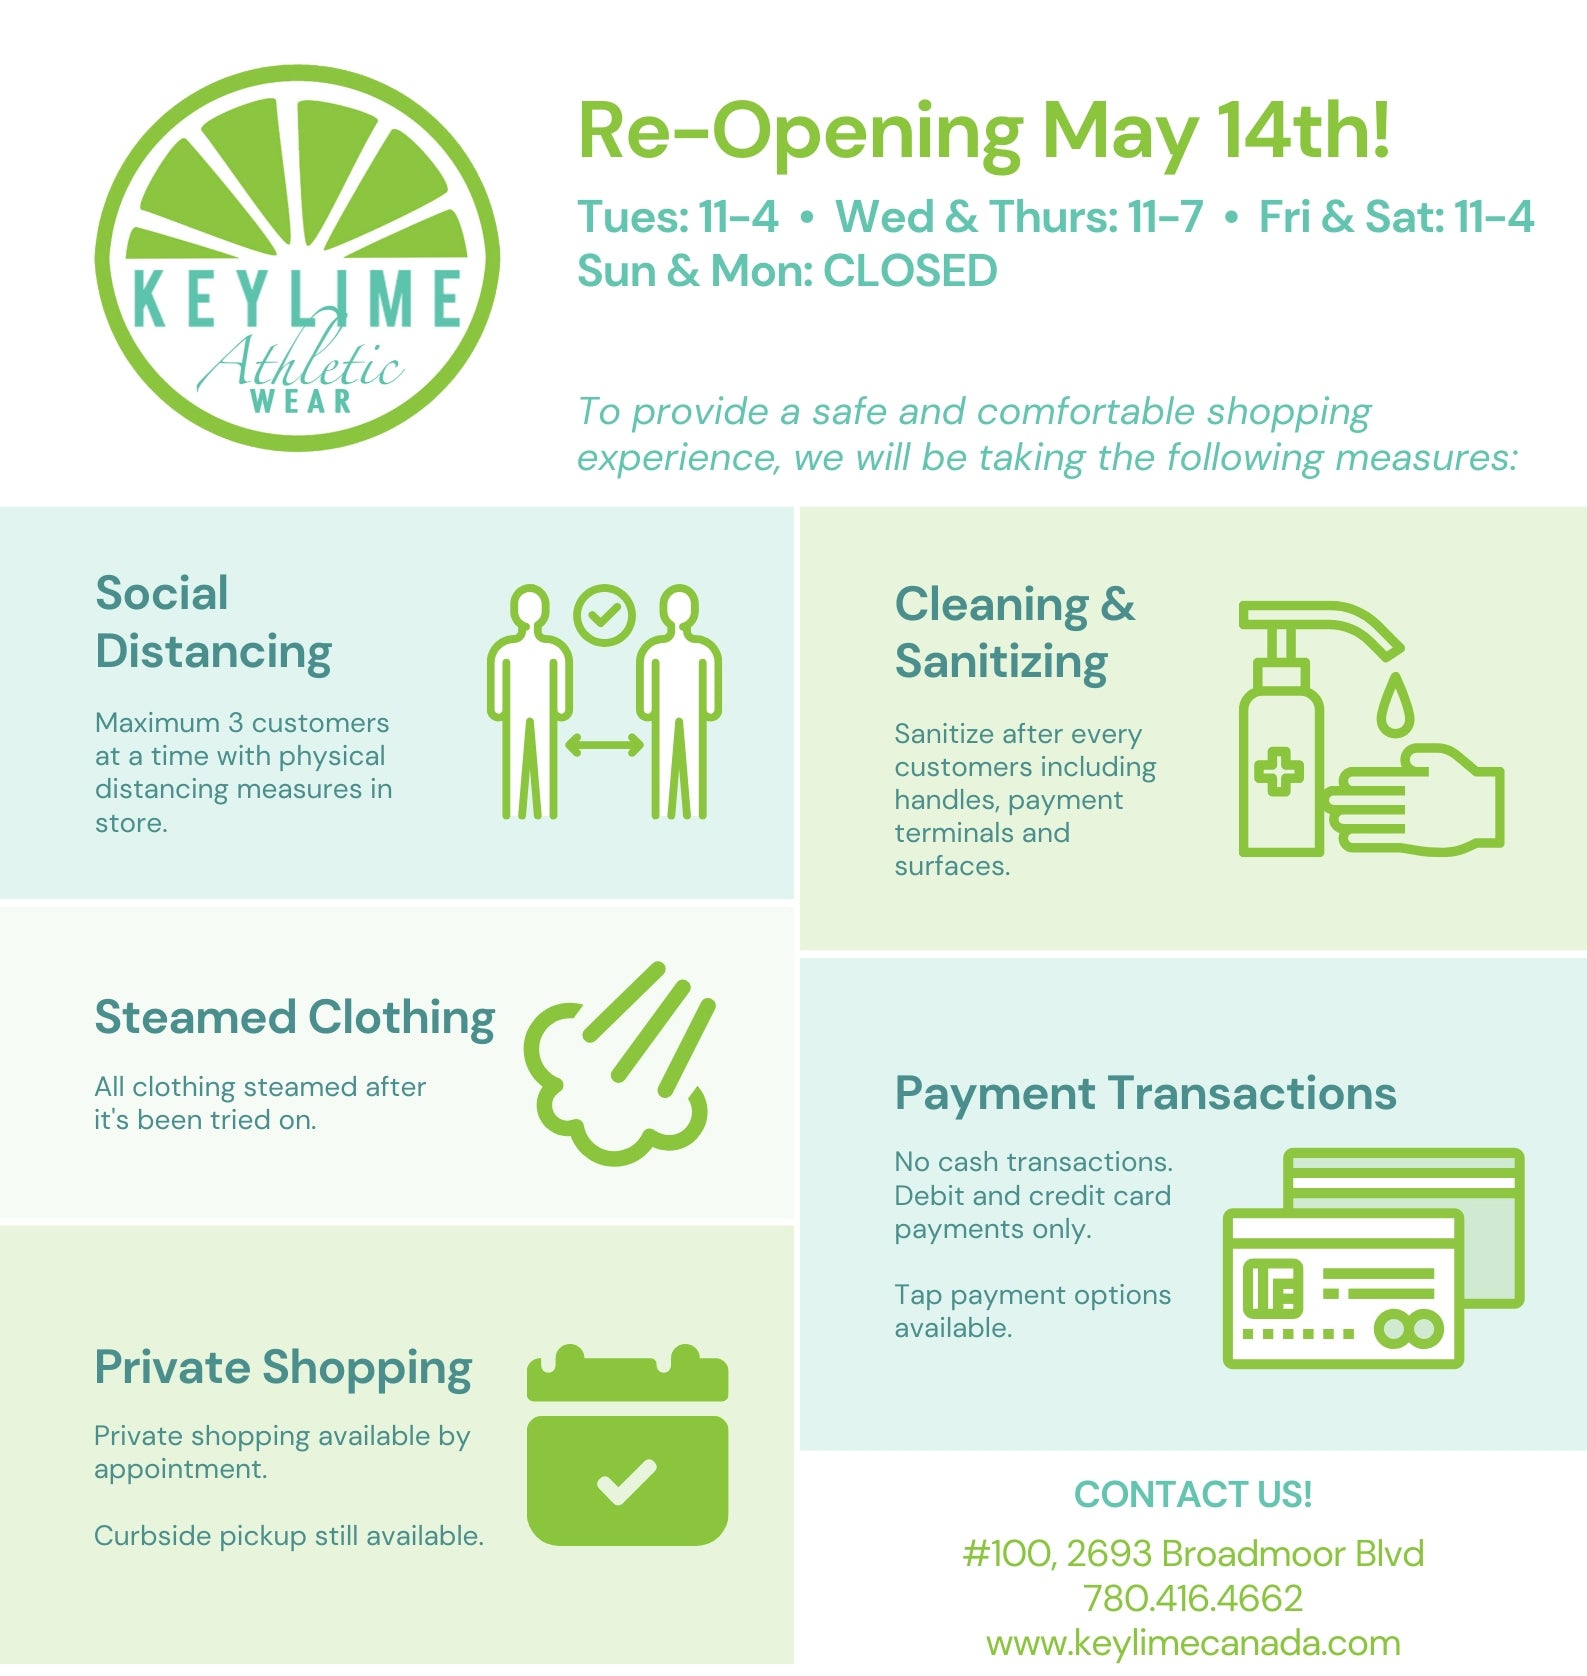 KEYLIME COVID-19 Re-Opening